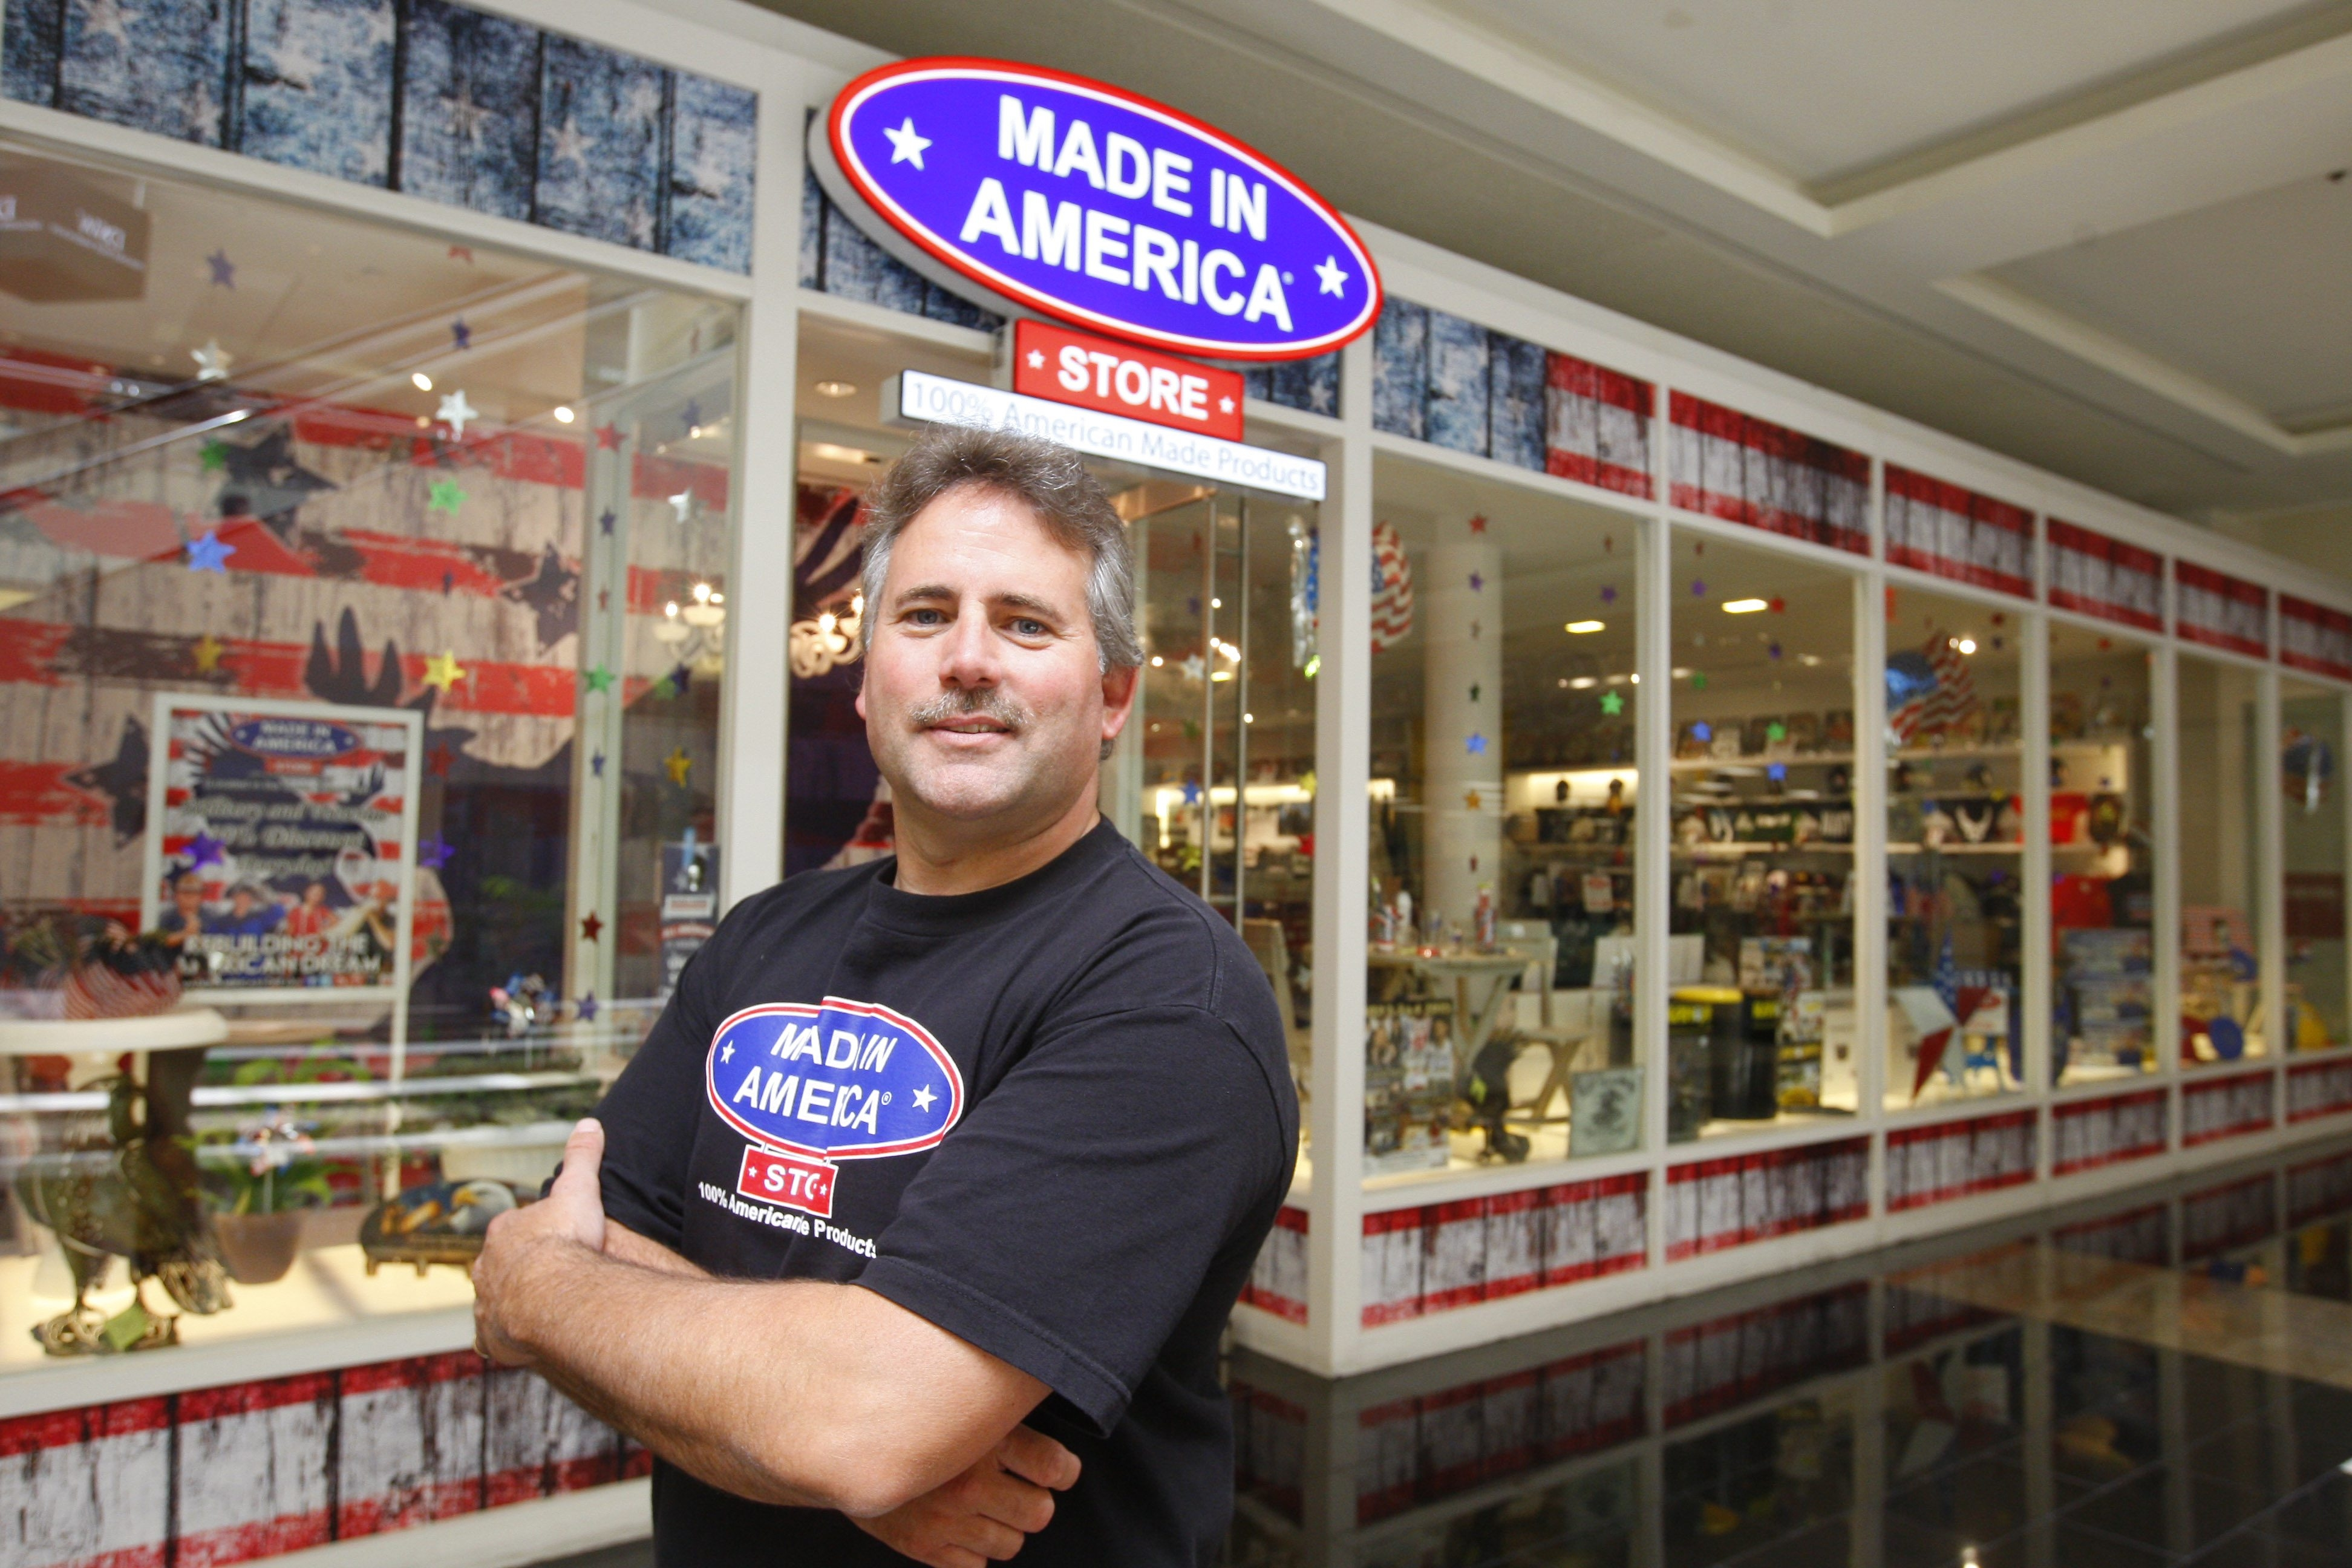 Made in America store owner Mark Andol is proud of his stores, which are located in the Walden Galleria in Cheektowaga (shown), Elma, Eastern Hills and McKinley malls, and the One Niagara center in Niagara Falls.